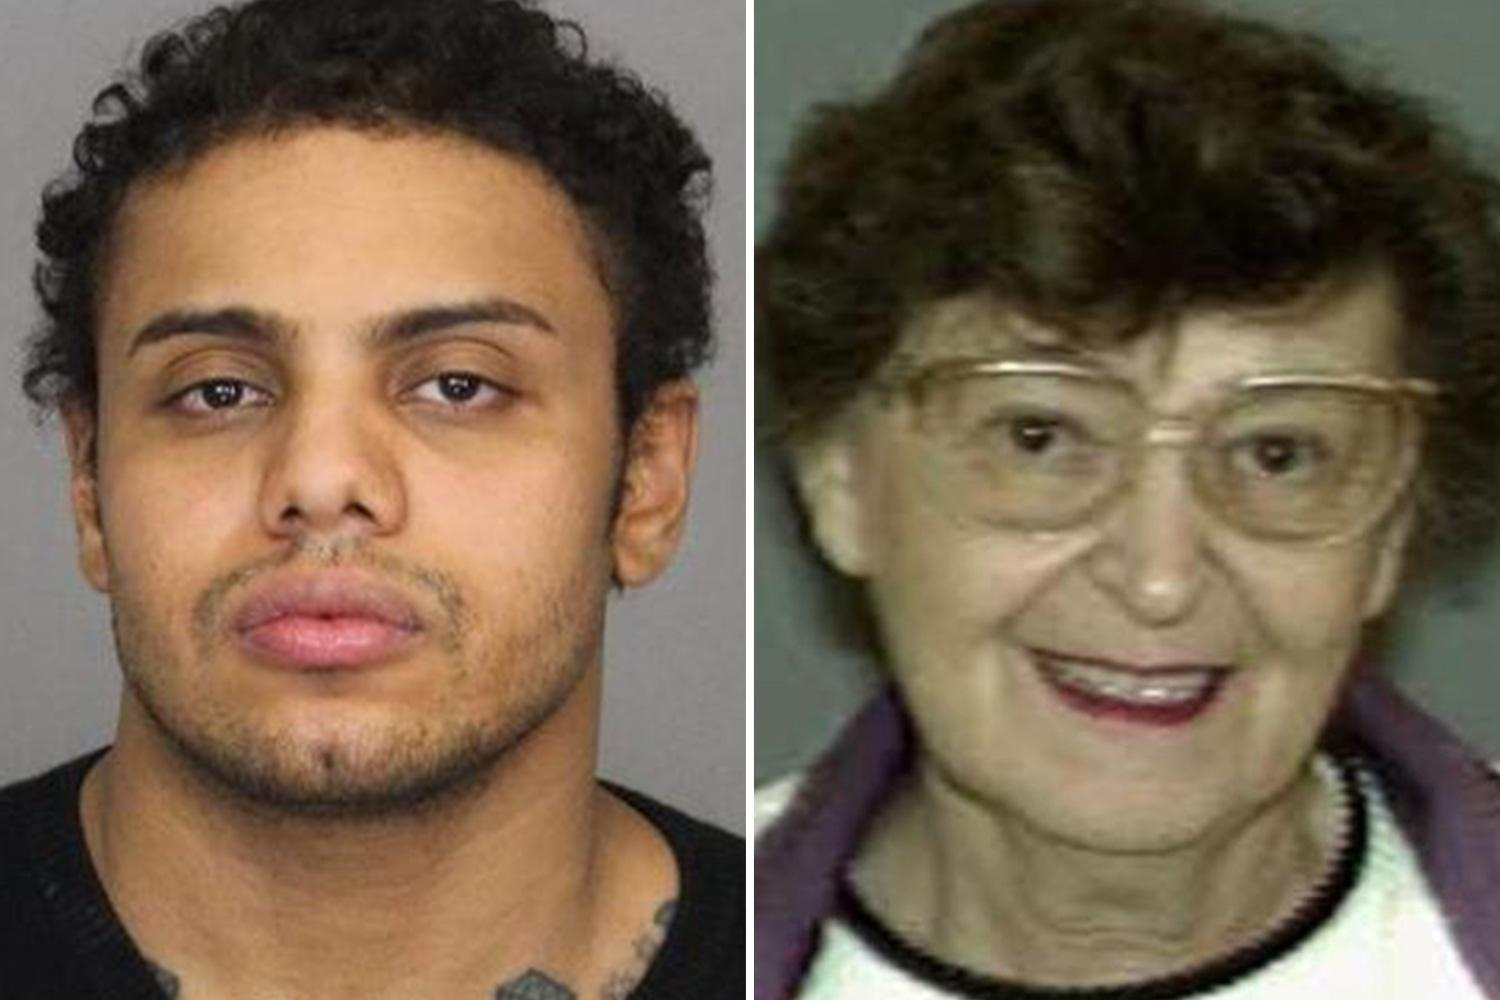 Maniac 'killed his 90-year-old grandmother chopped her up then shared video of him dumping her body on Facebook'